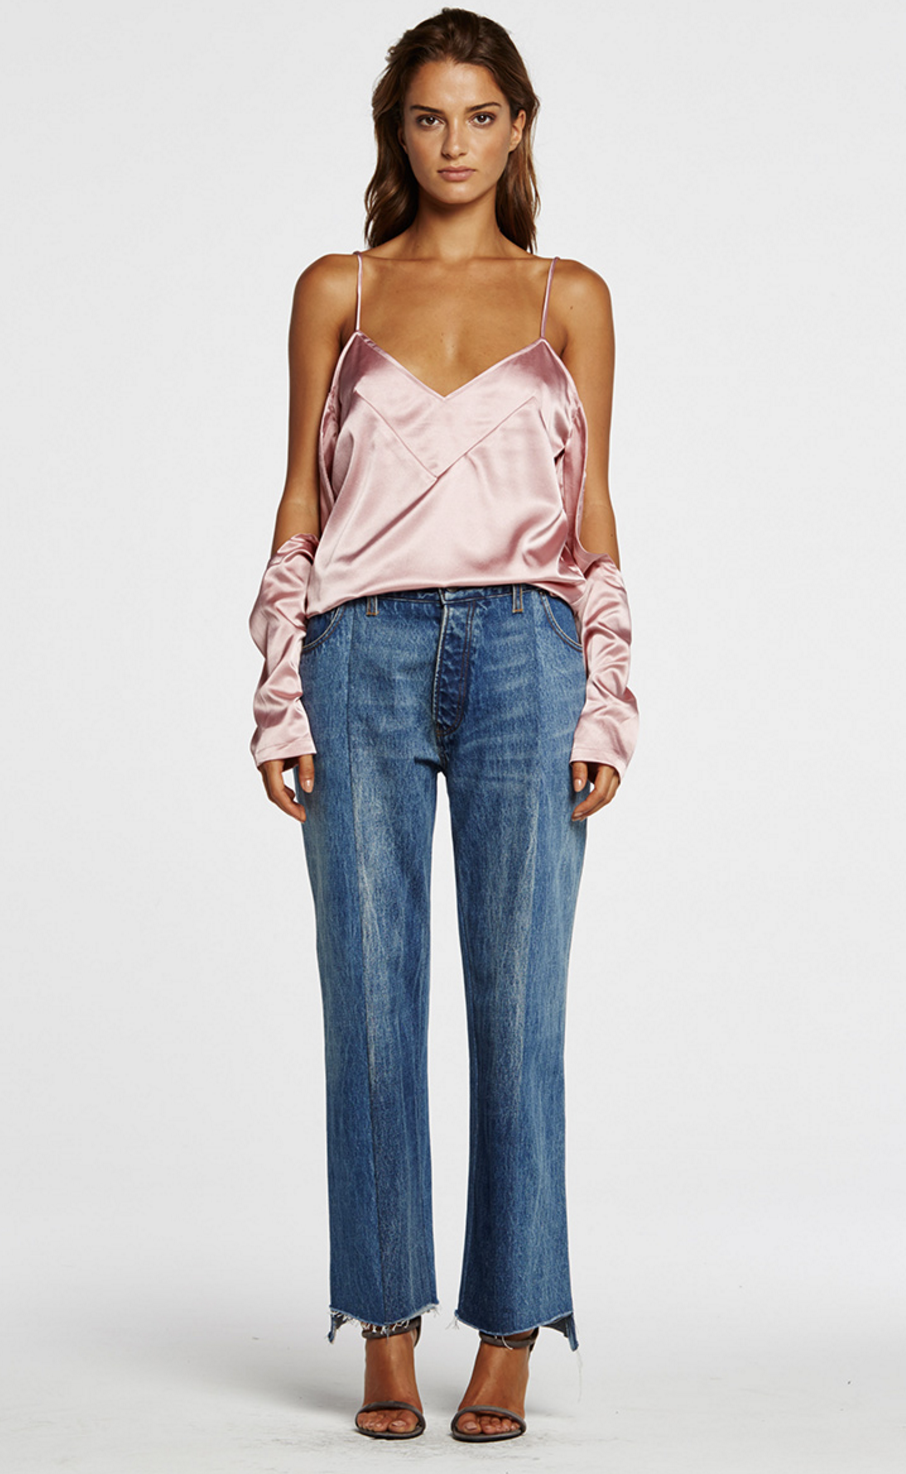 Maurie & Eve dreamin' jeans $179